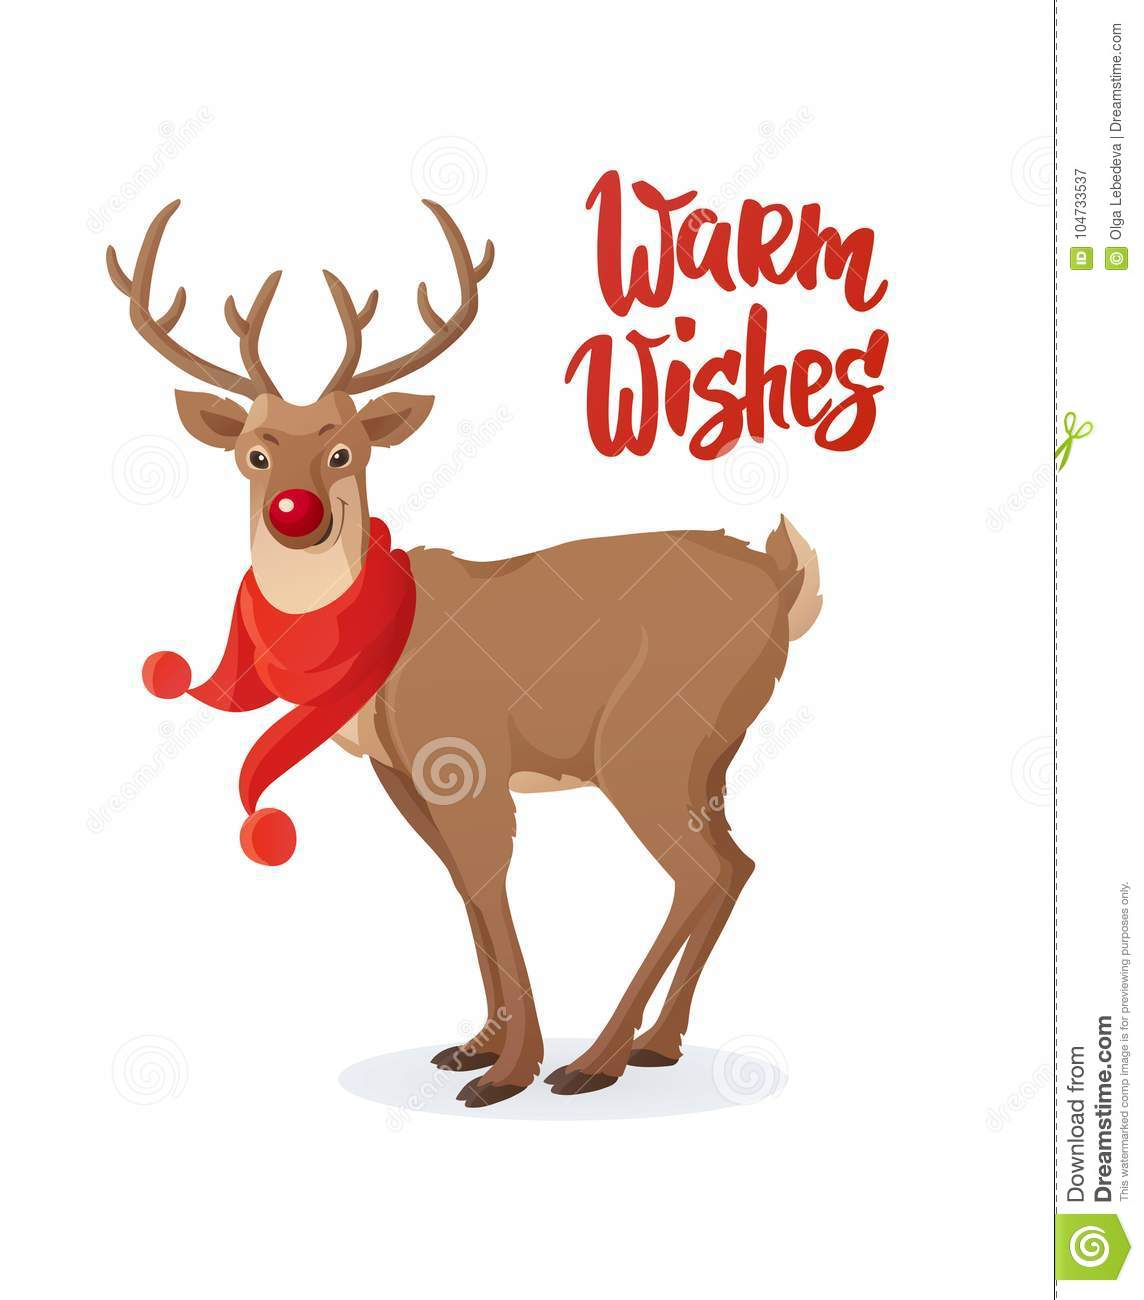 Christmas card cartoon rudolph red nose reindeer with scarf warm download christmas card cartoon rudolph red nose reindeer with scarf warm wishes text m4hsunfo